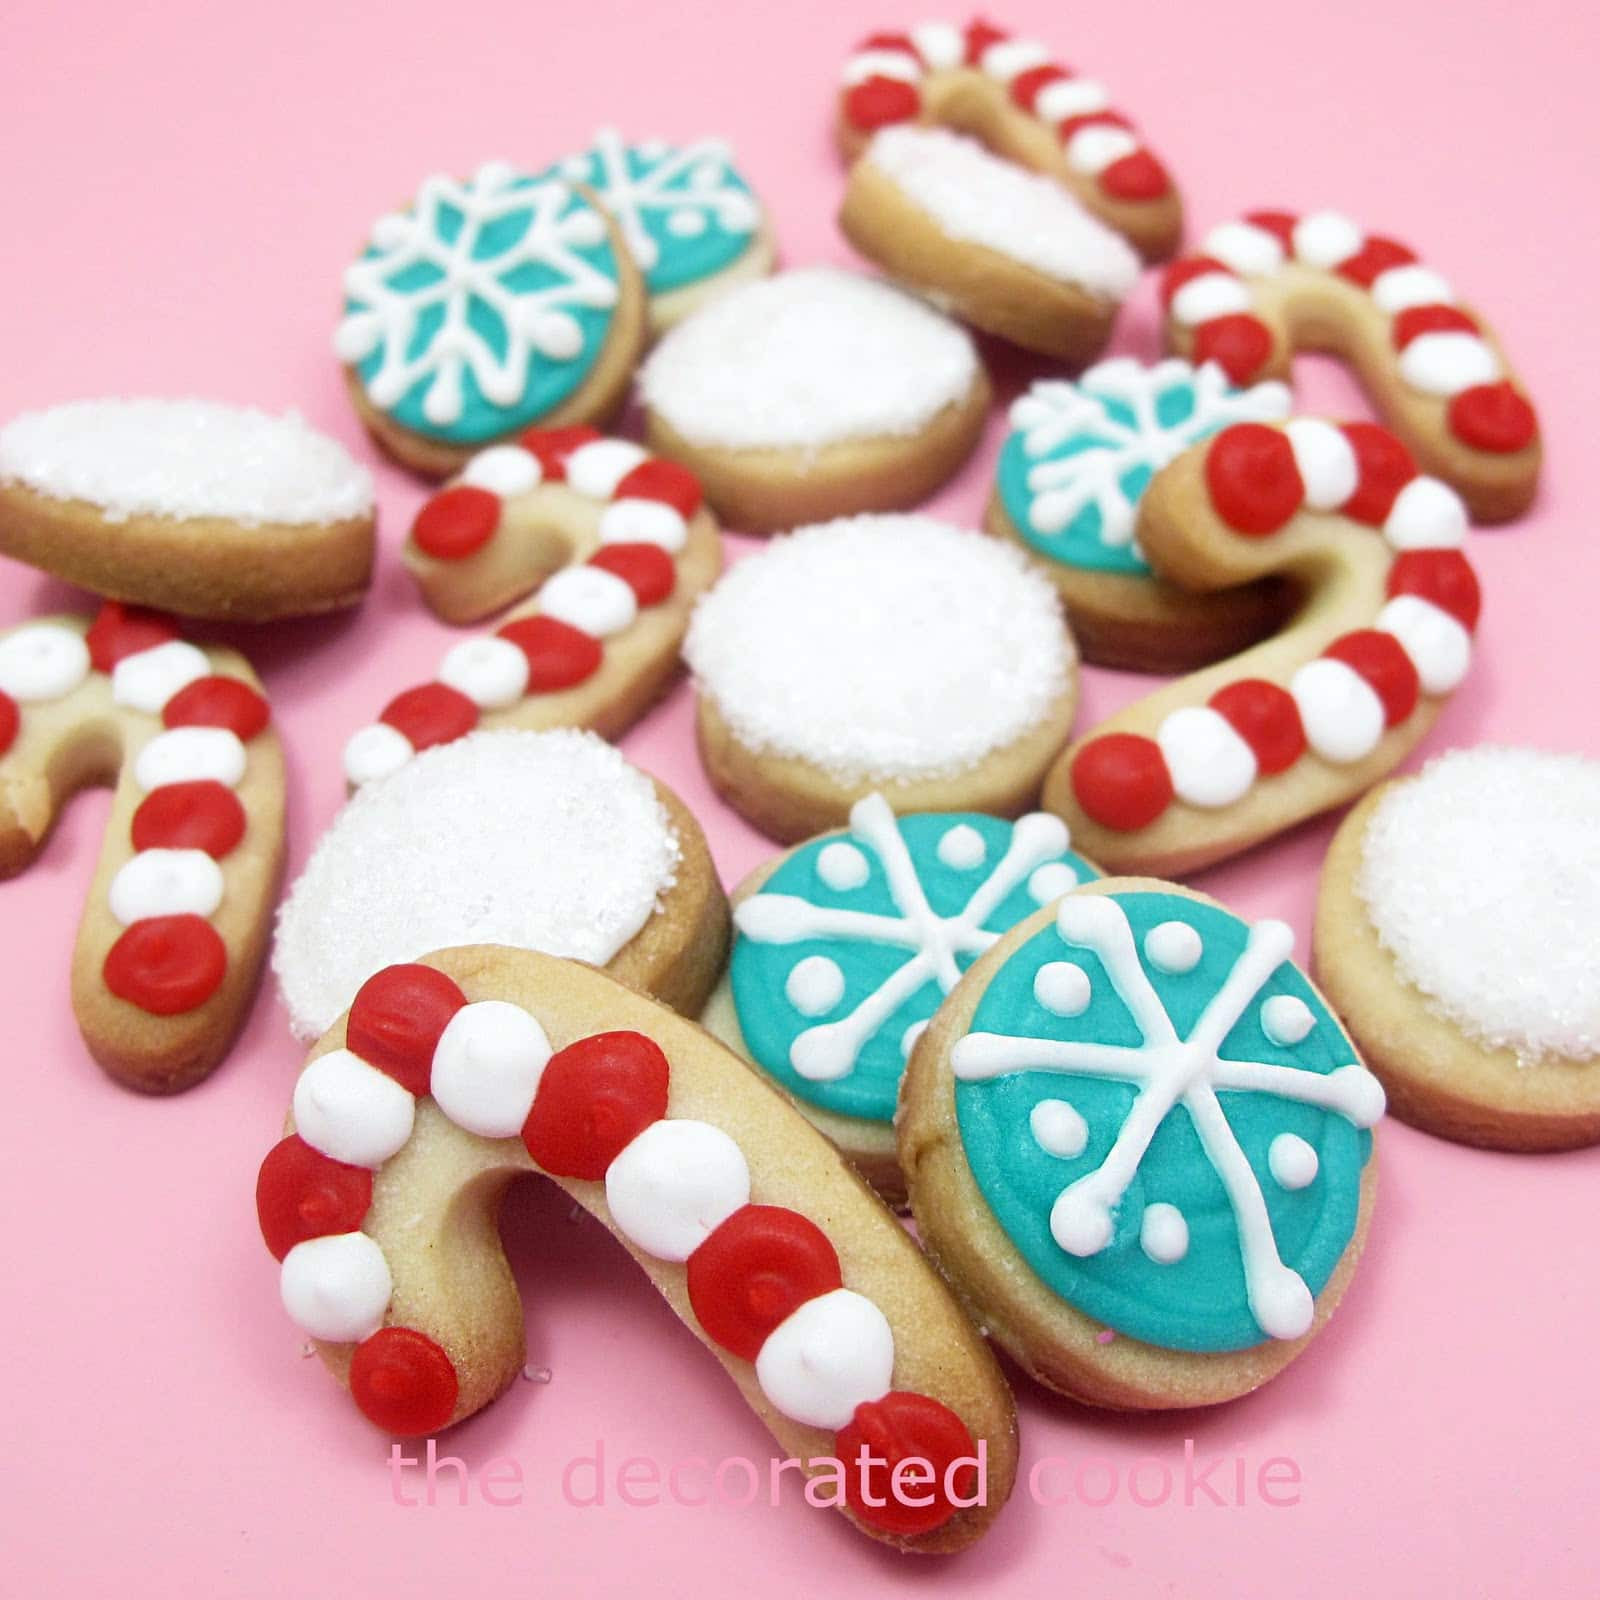 Decorated Christmas Cookies Recipes  Super cute decorated holiday cookies Christmas cookies in